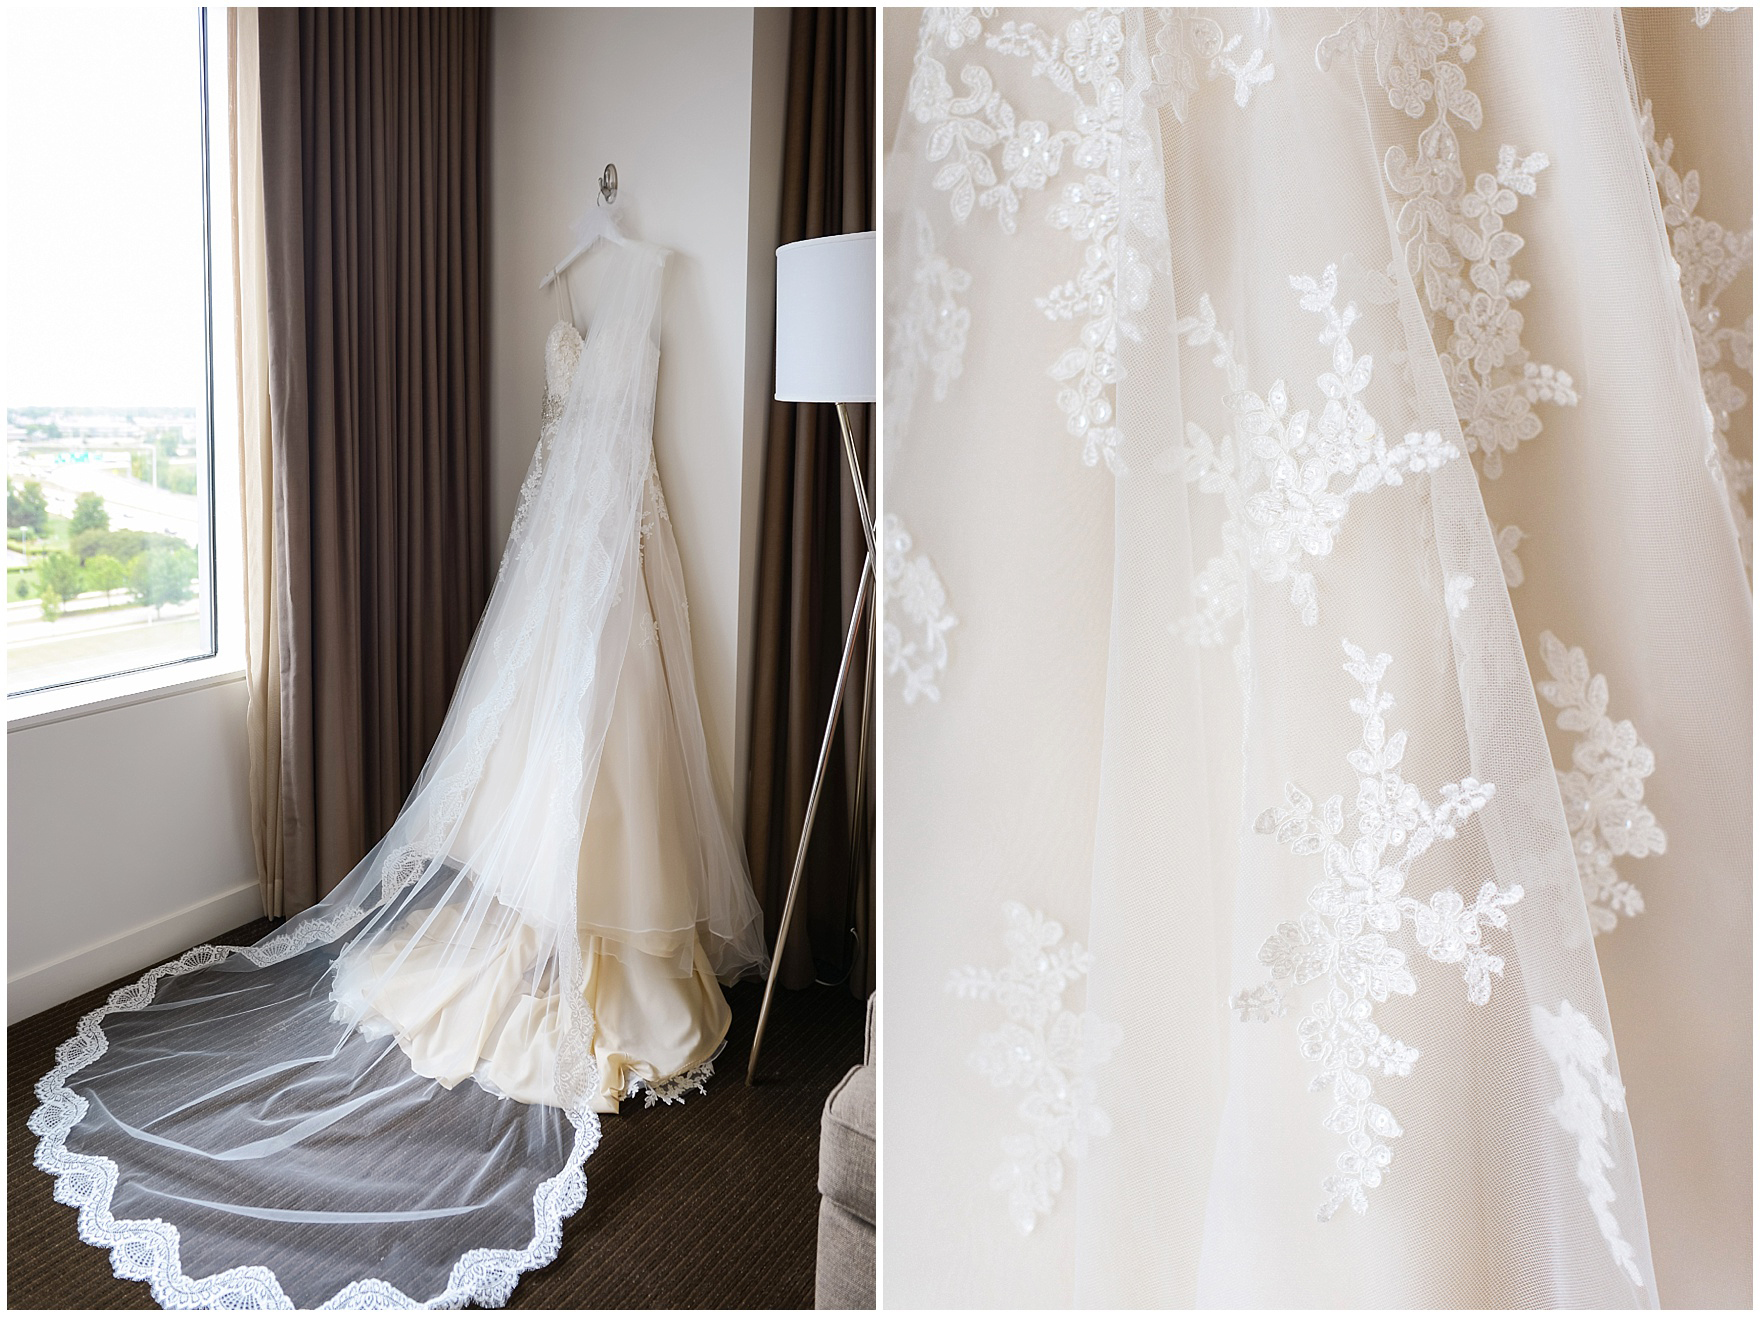 A bridal gown and veil with lace details hangs in the hotel suite before a Hotel Arista Naperville wedding.